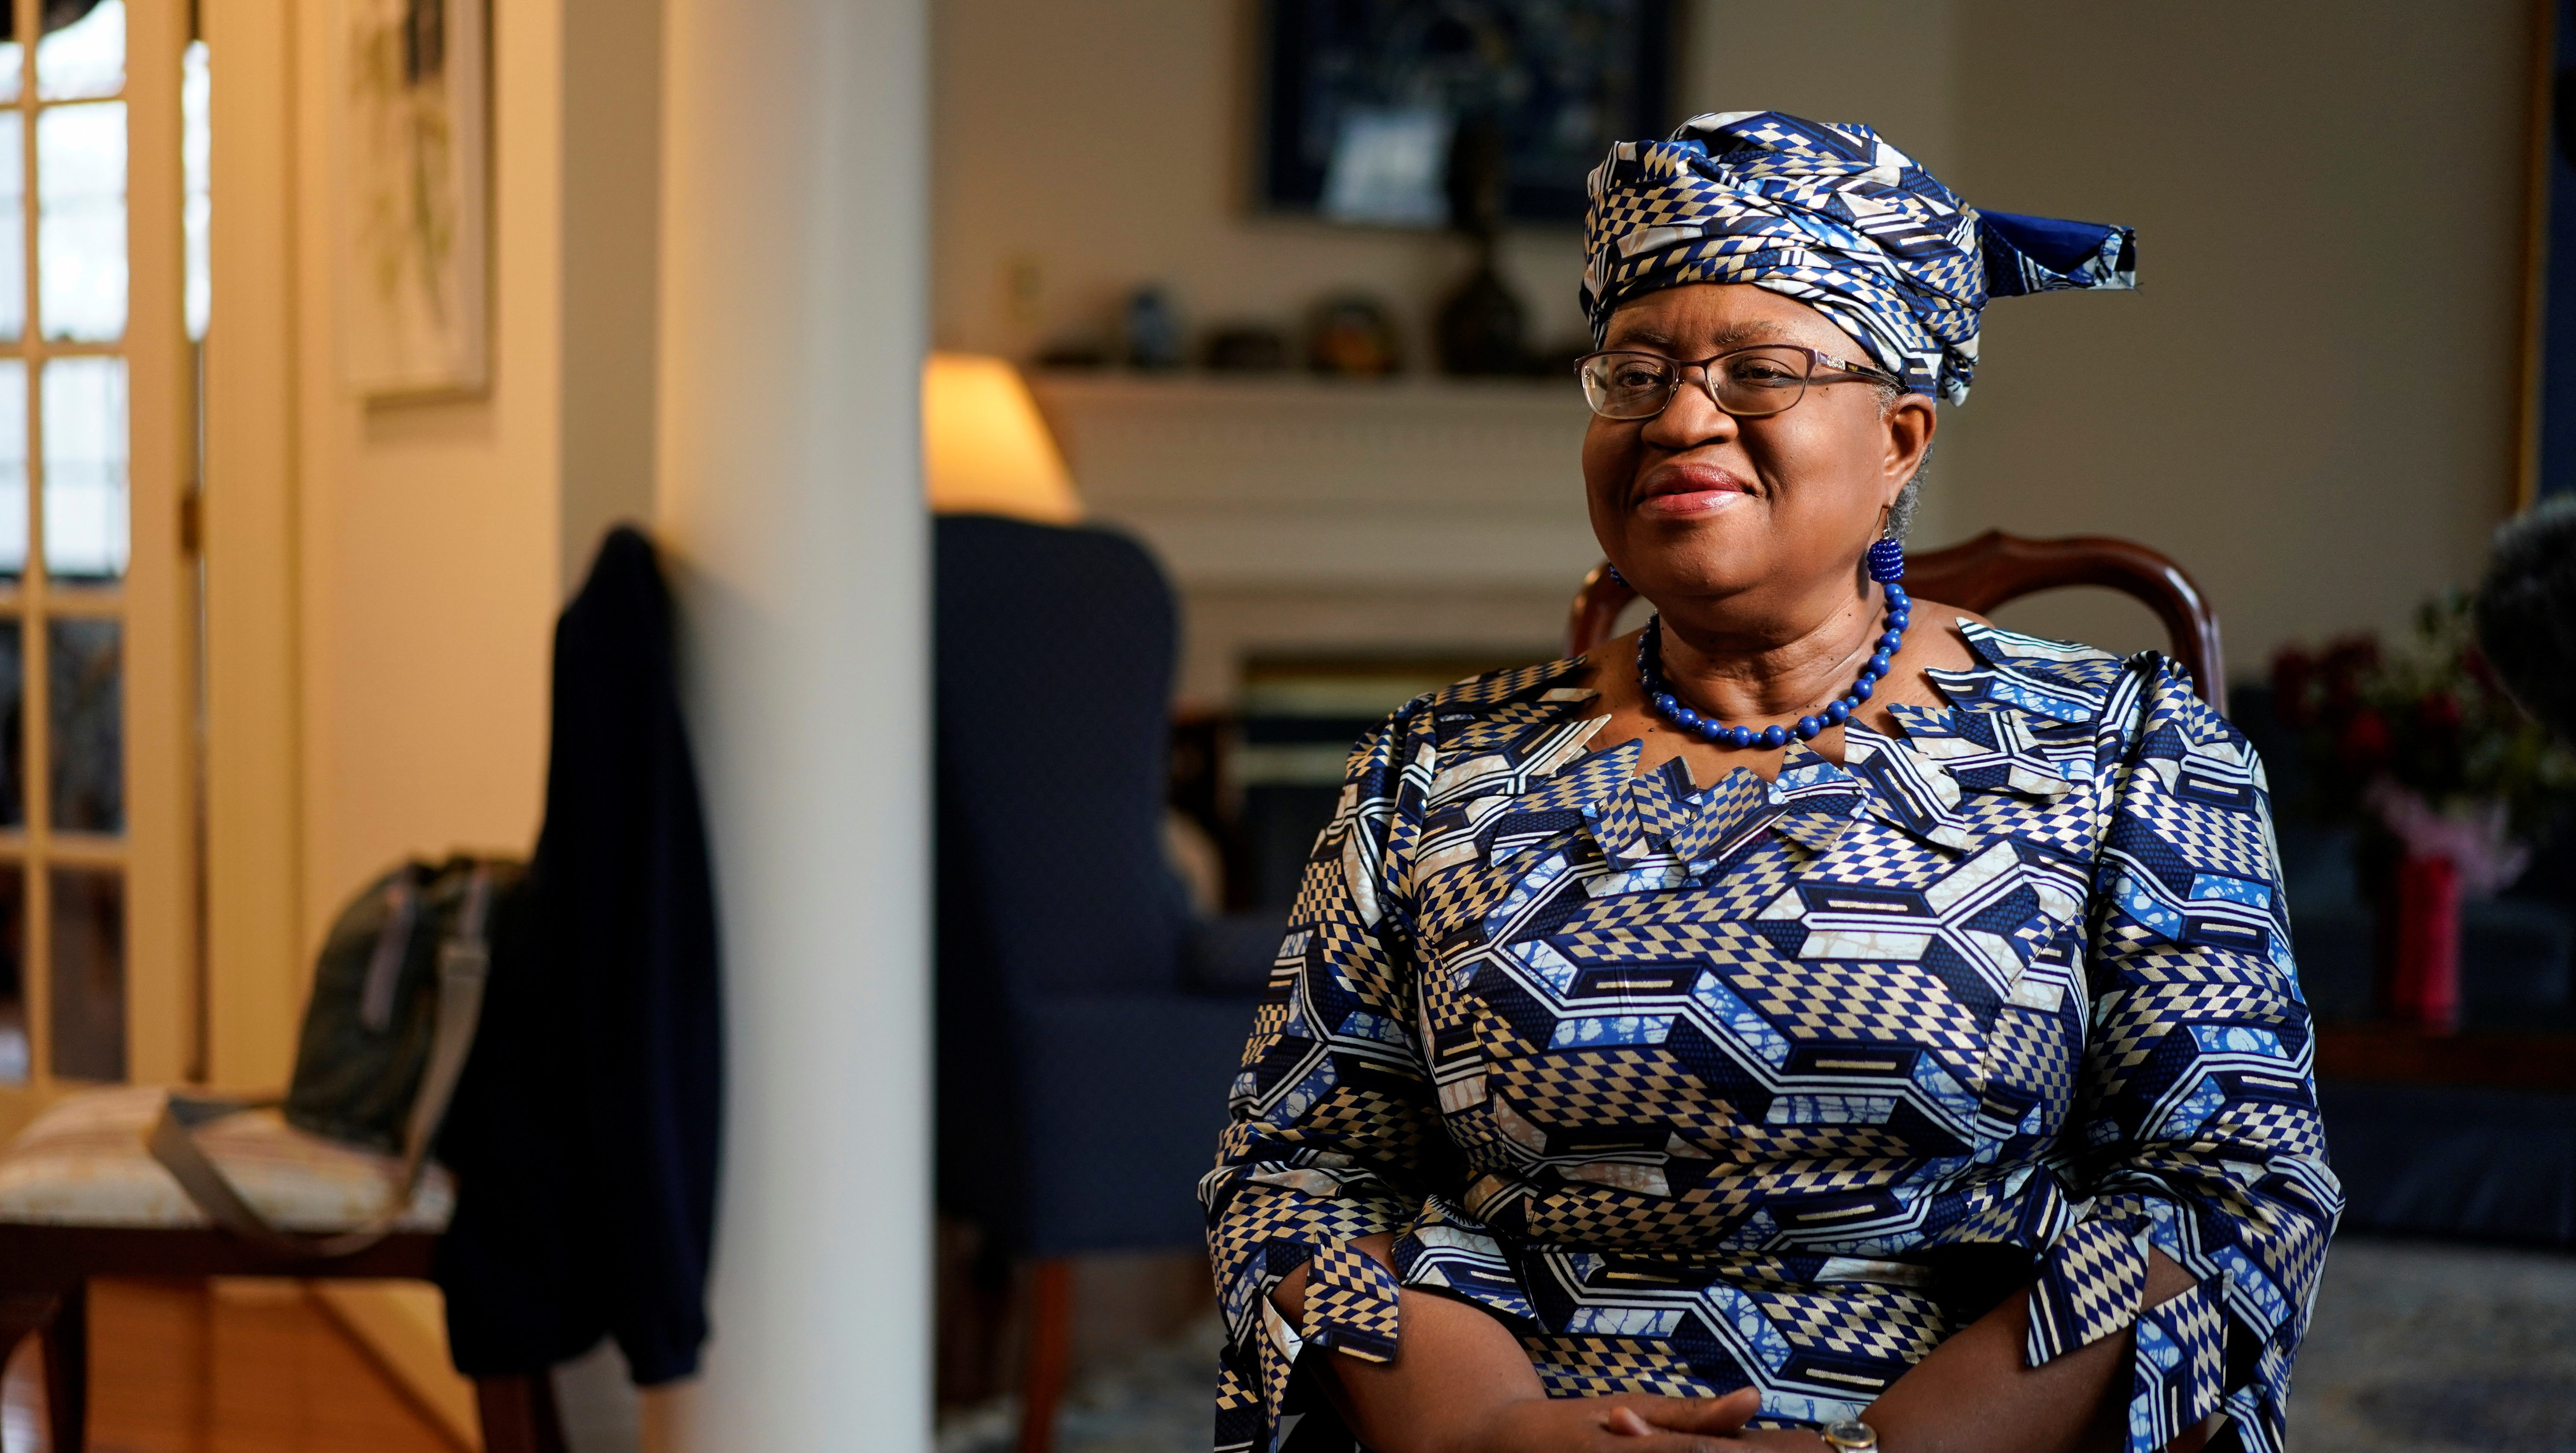 Incoming World Trade Organization President Ngozi Okonjo-Iweala speaks during an interview with Reuters in Potomac, Maryland, U.S., February 15.